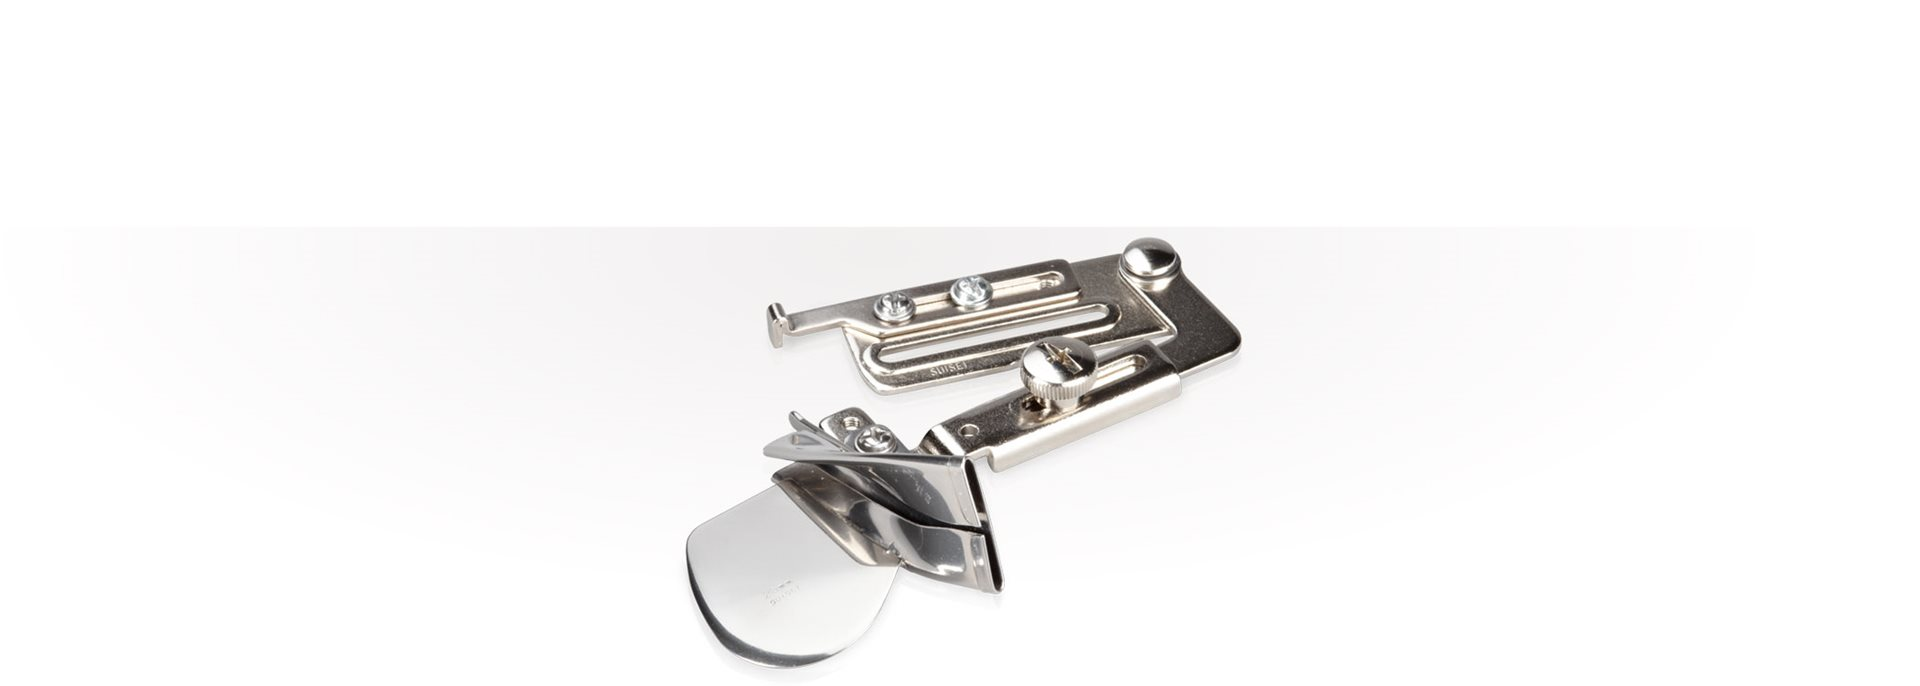 Bild: Binder attachment # 87